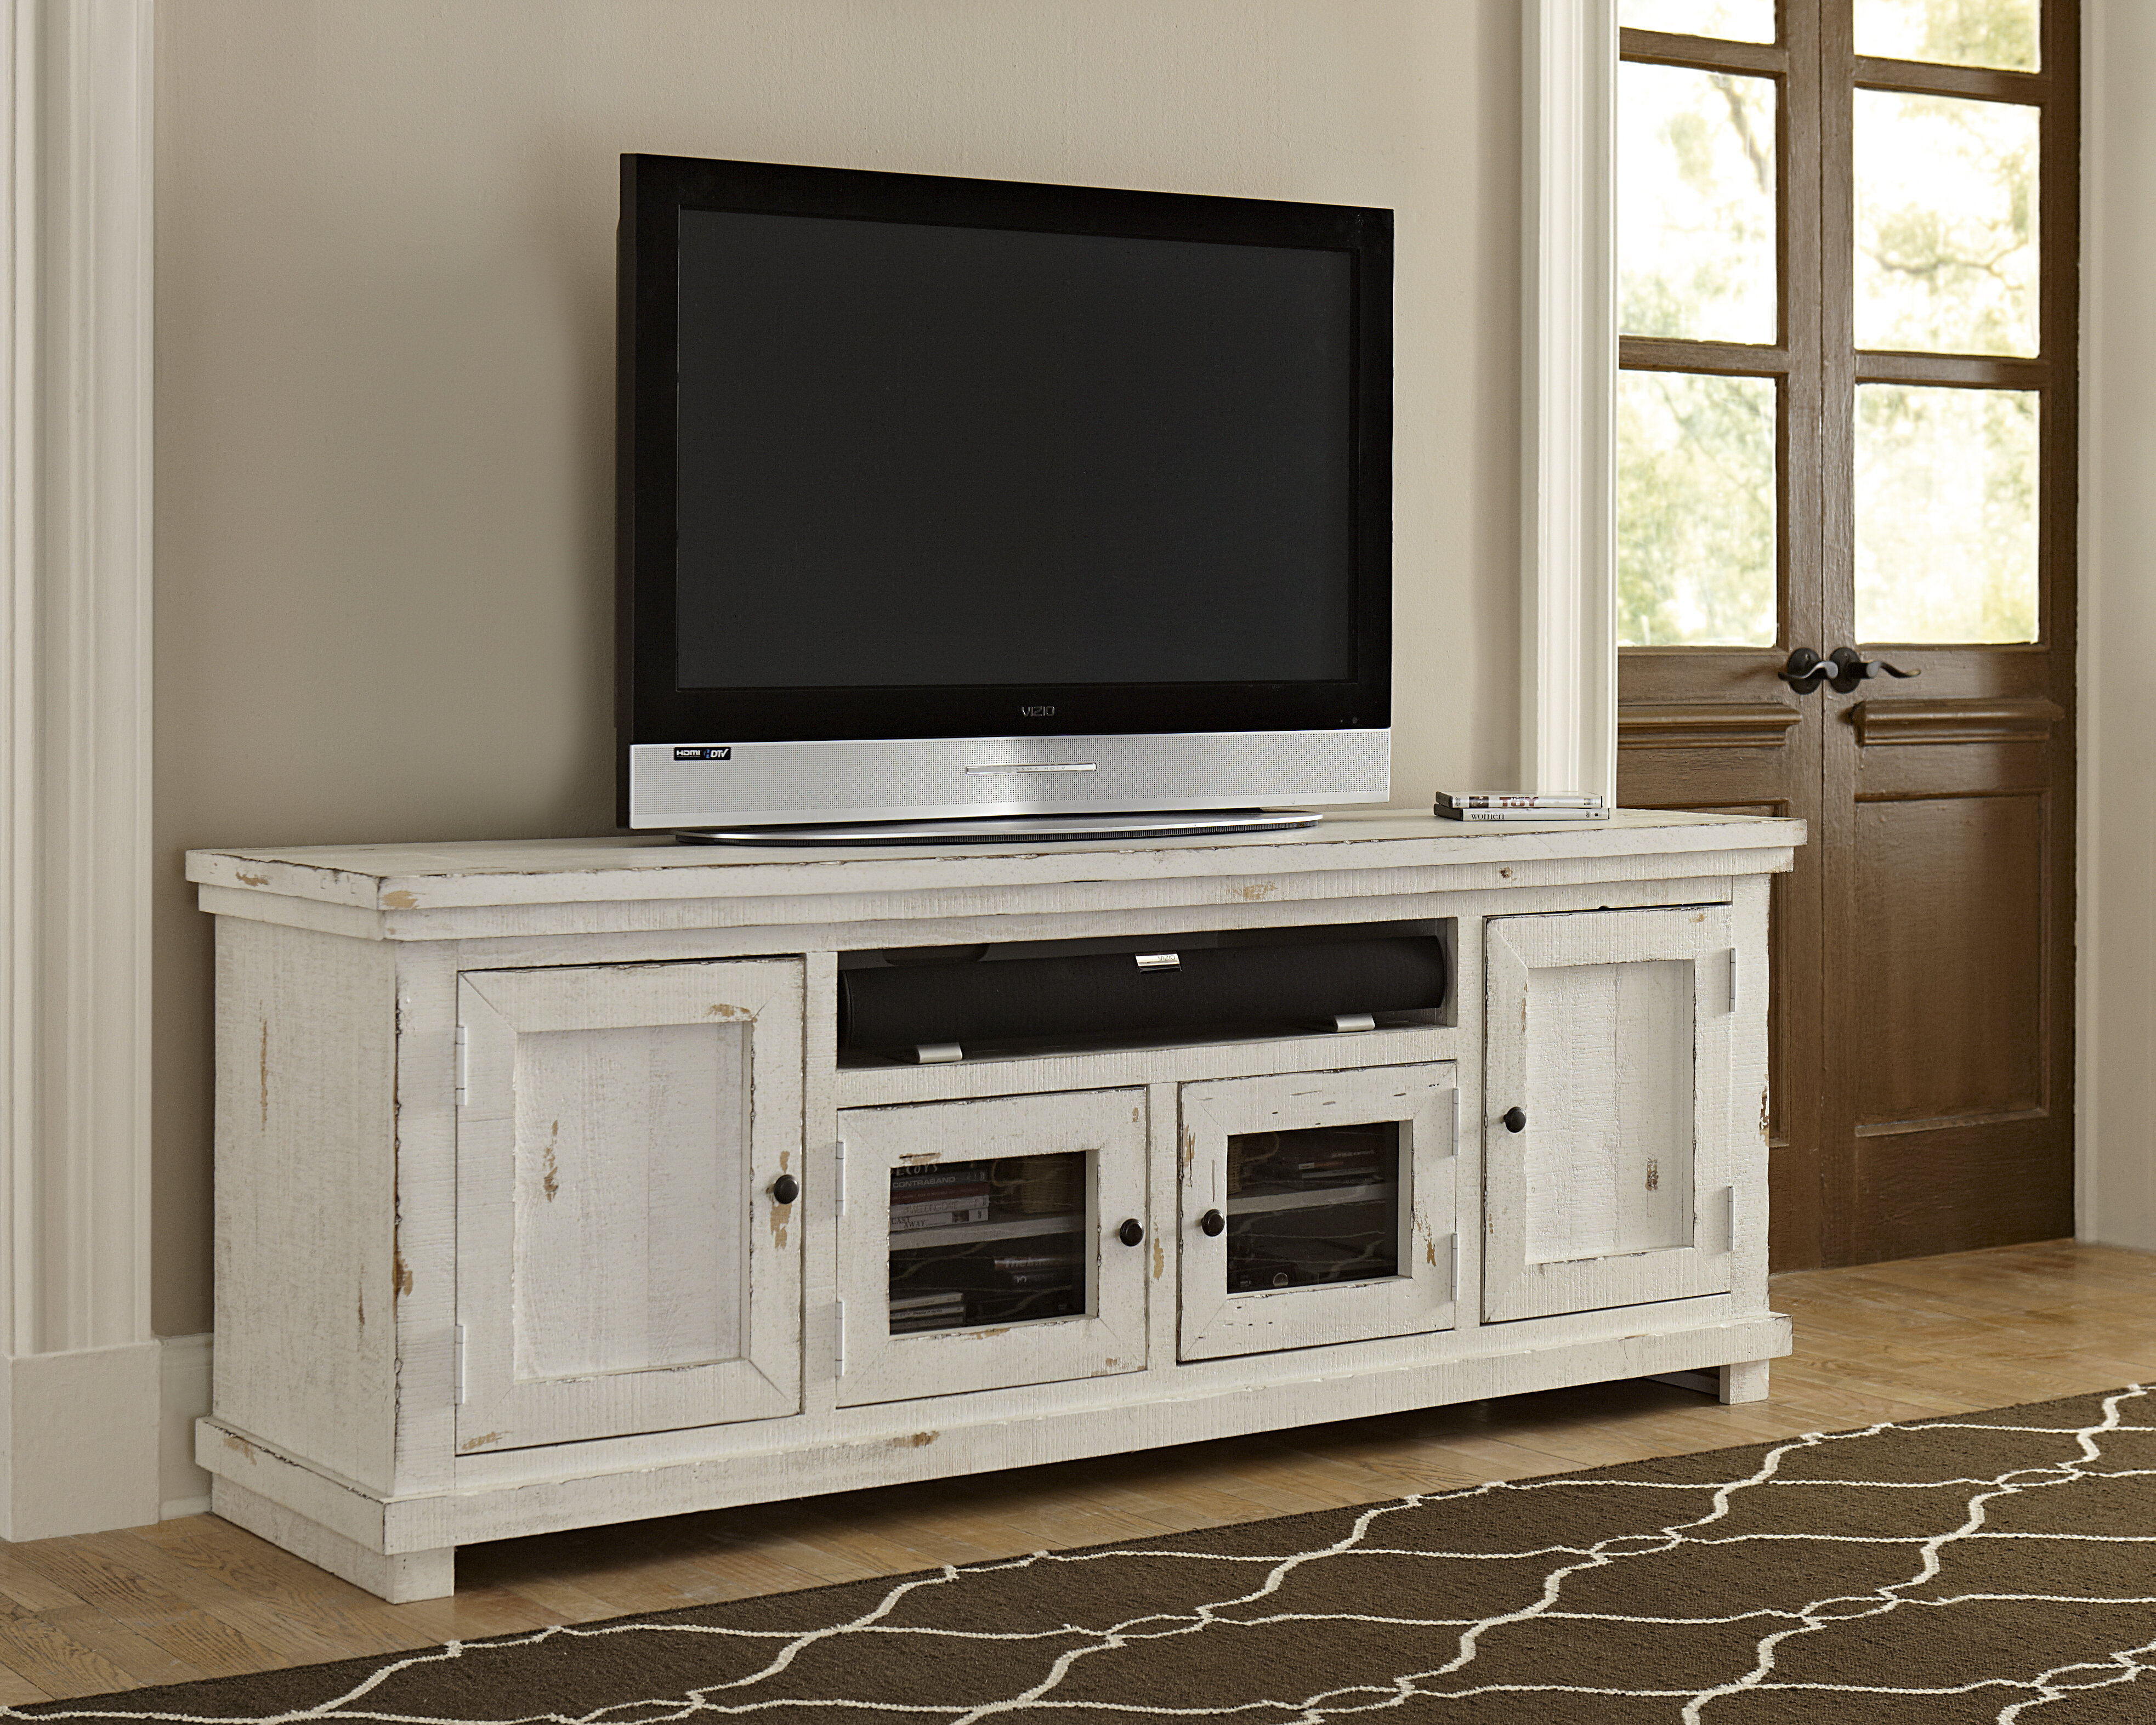 Pineland Tv Stand For Tvs Up To 85 Reviews Joss Main